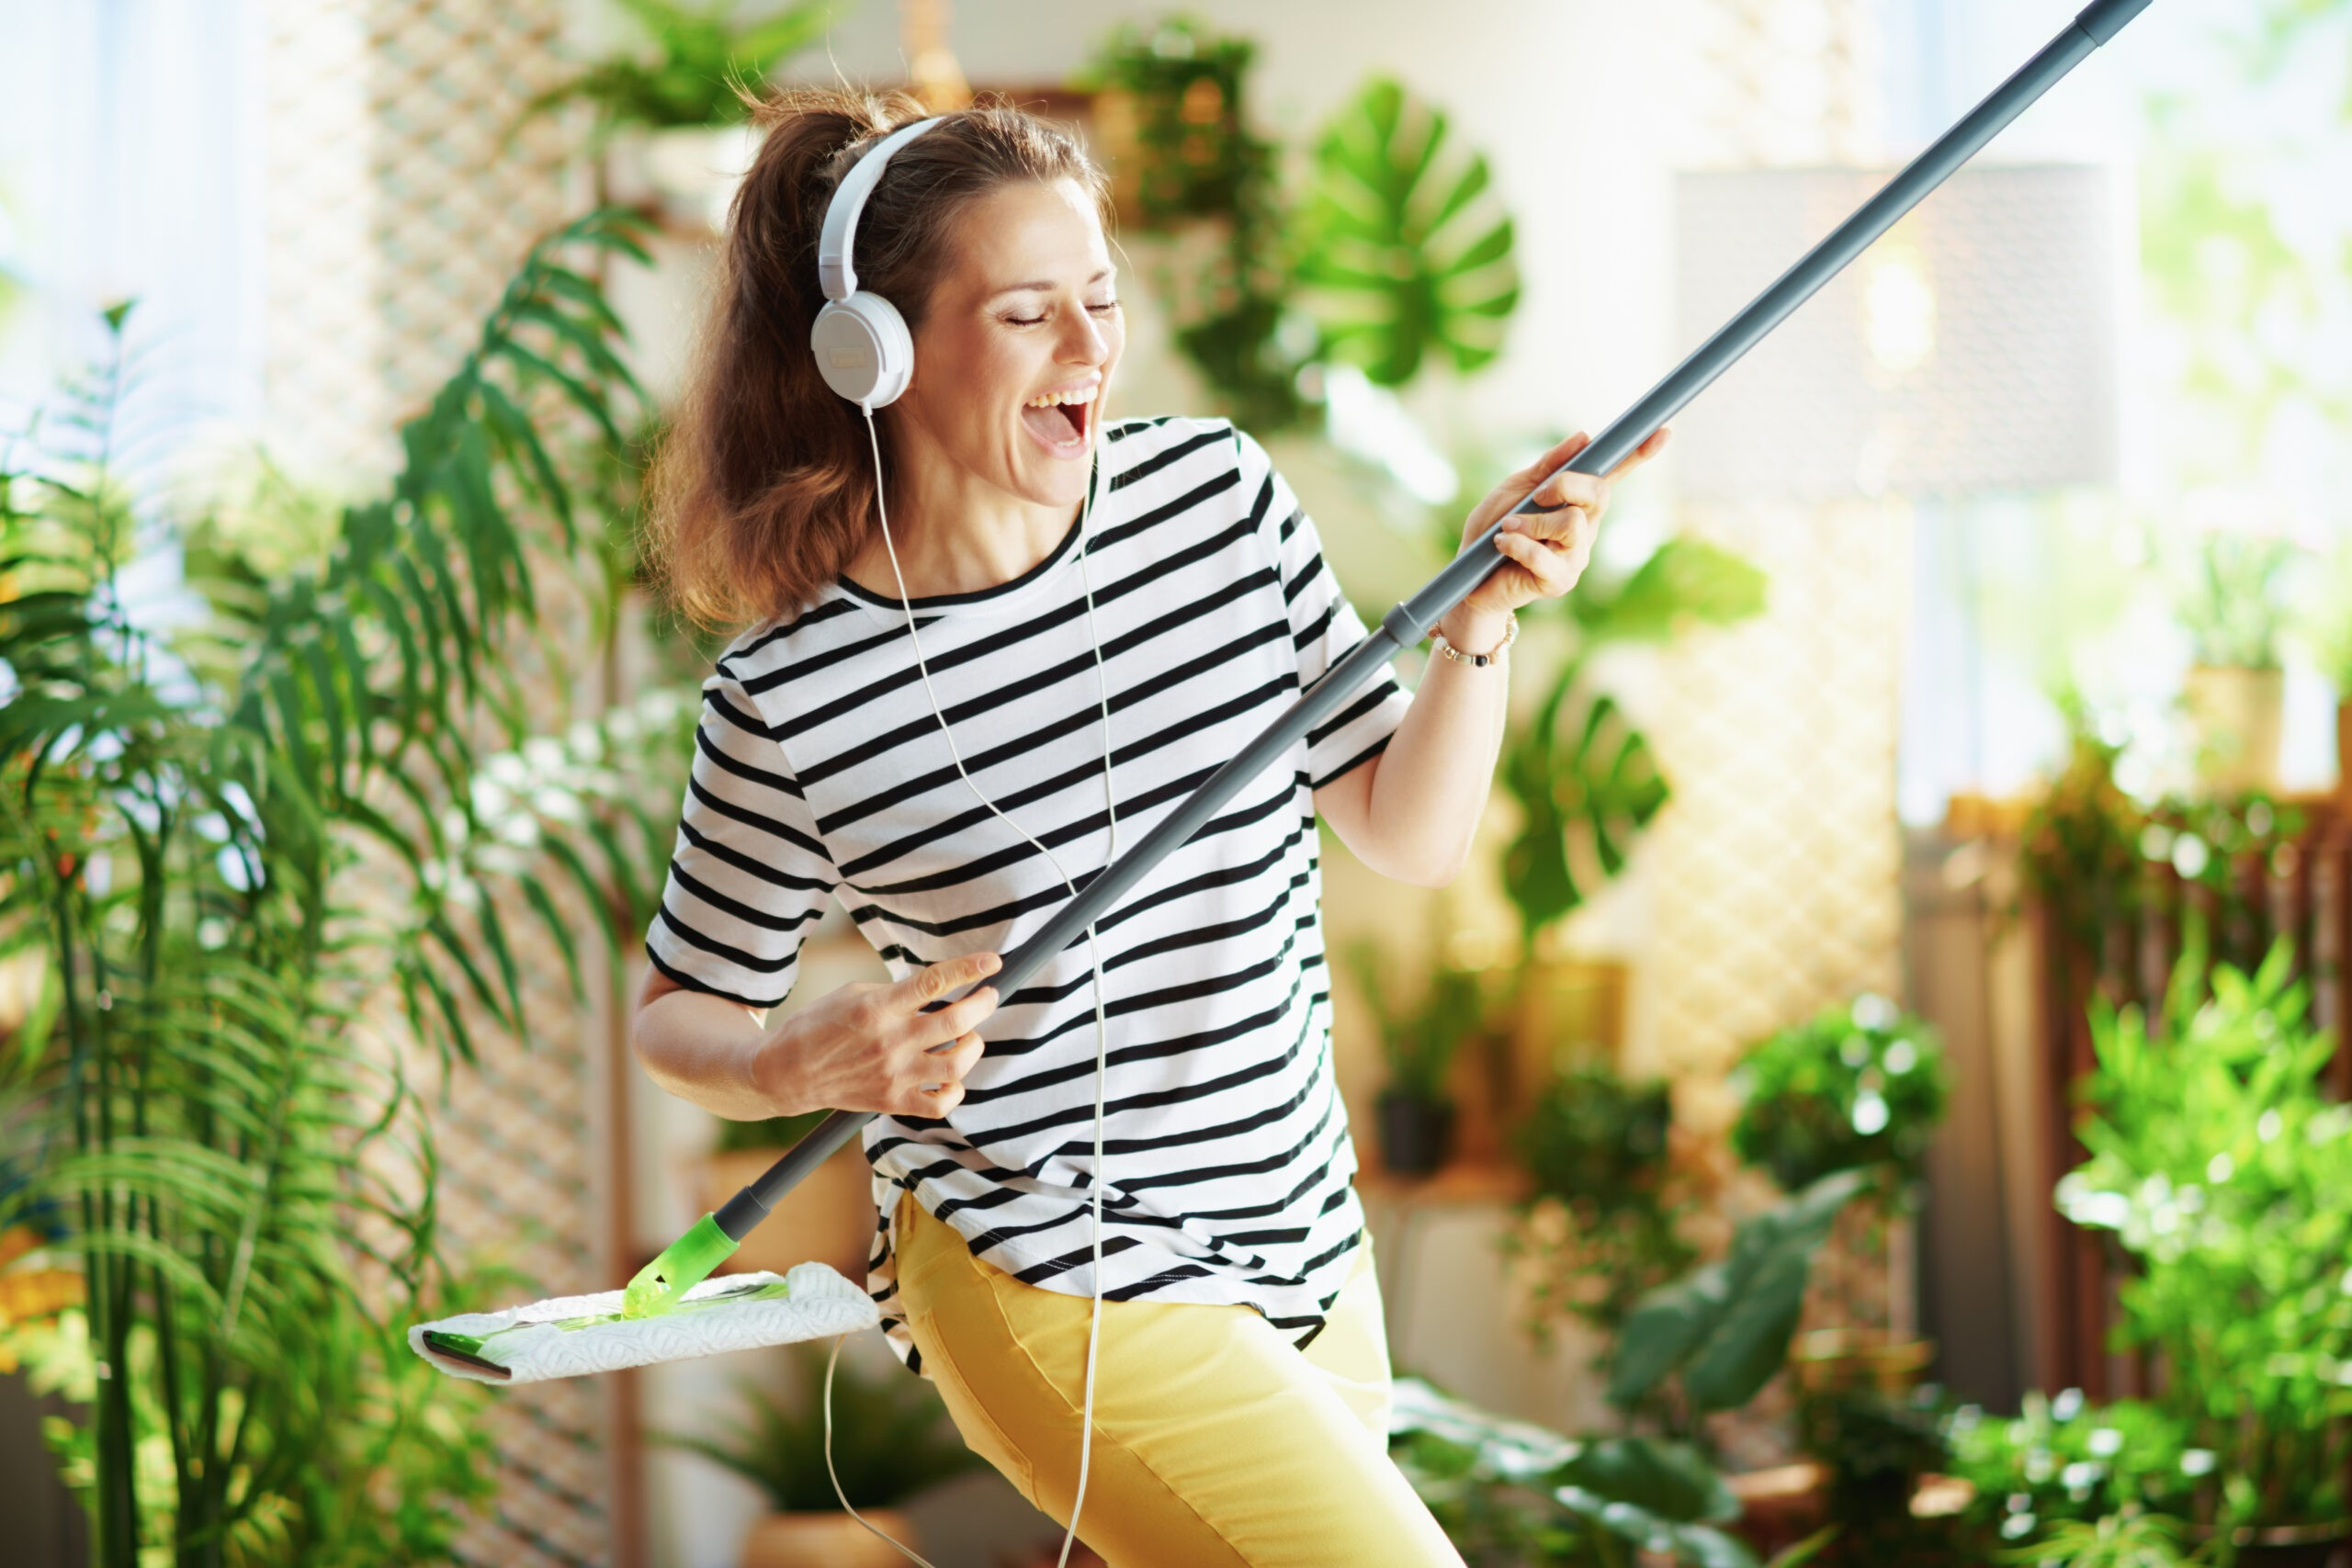 smiling woman in striped shirt in sunny day doing housekeeping